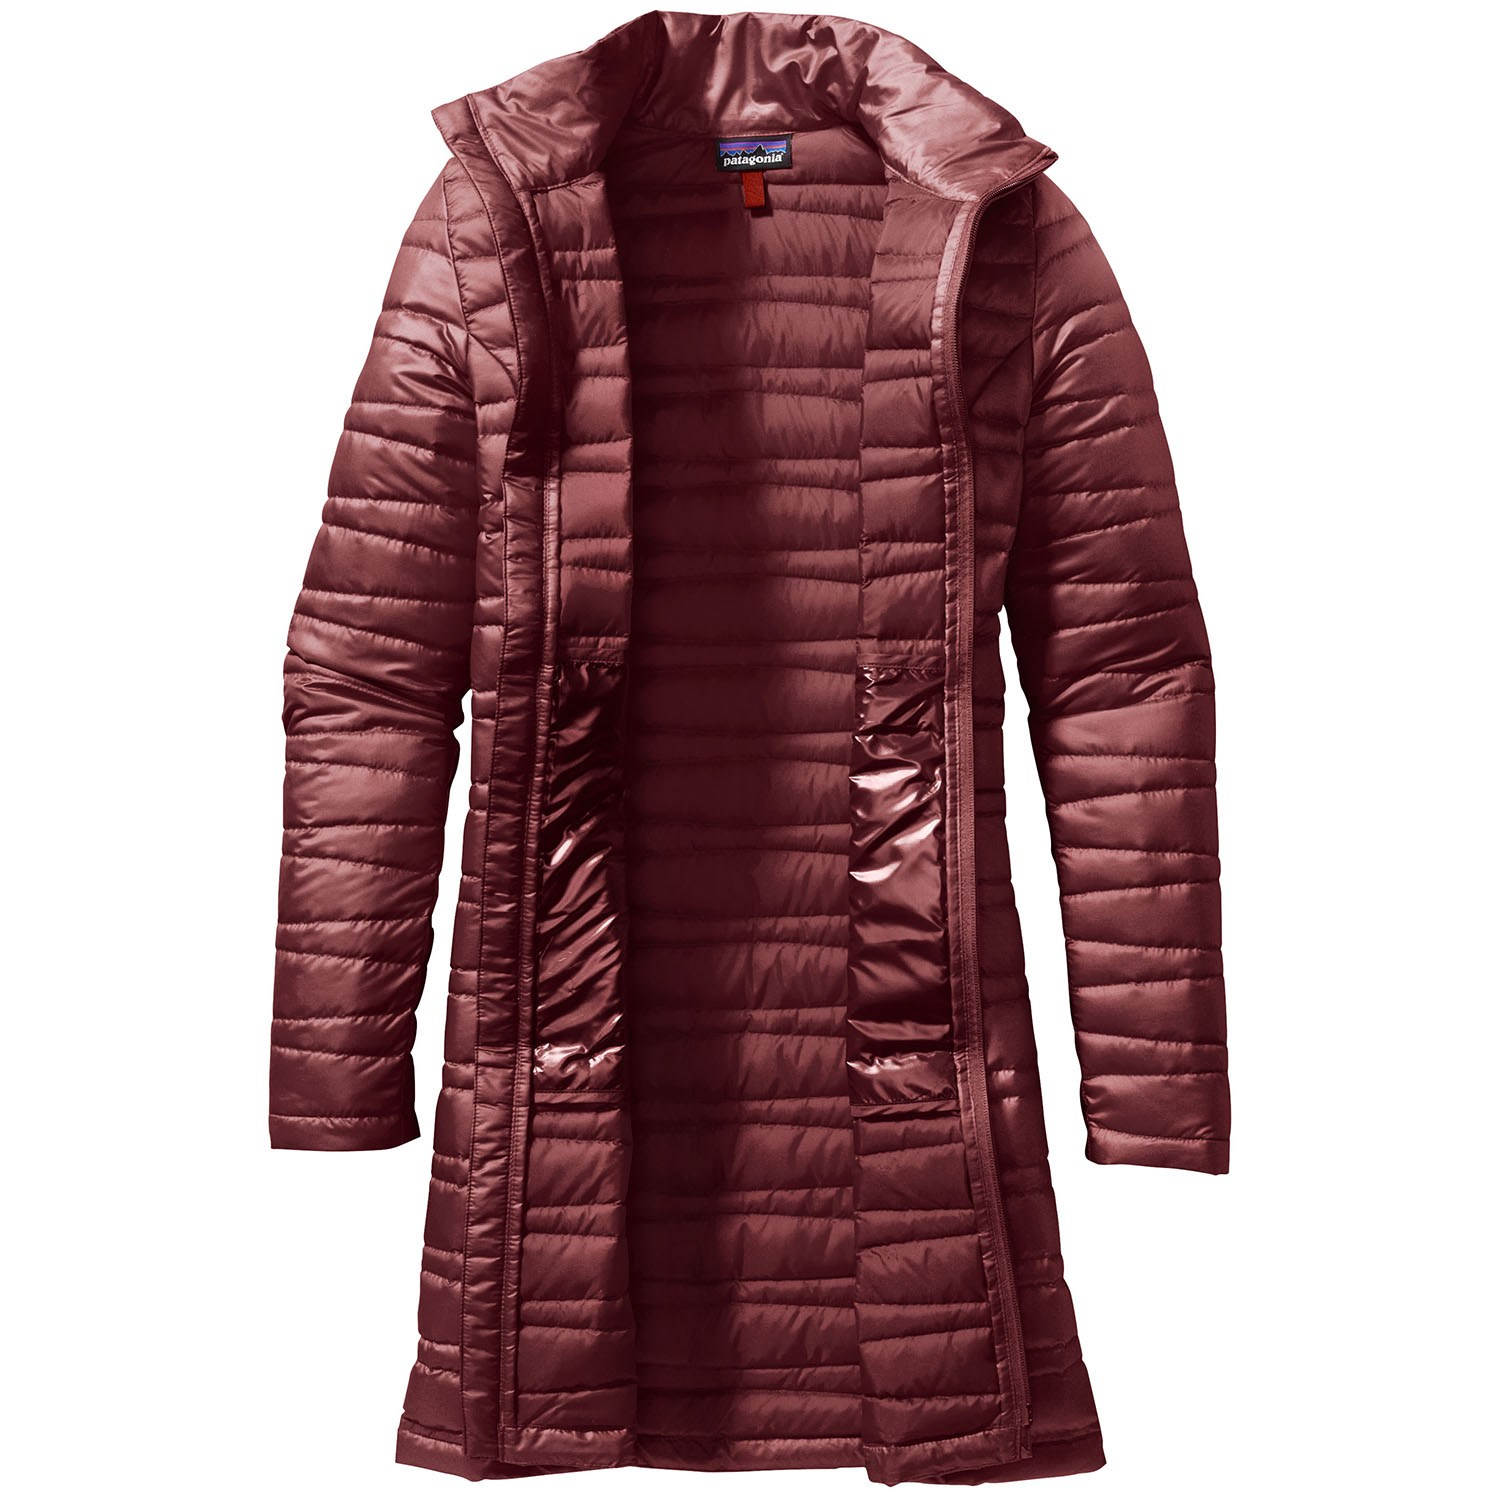 Patagonia low sky parka sale